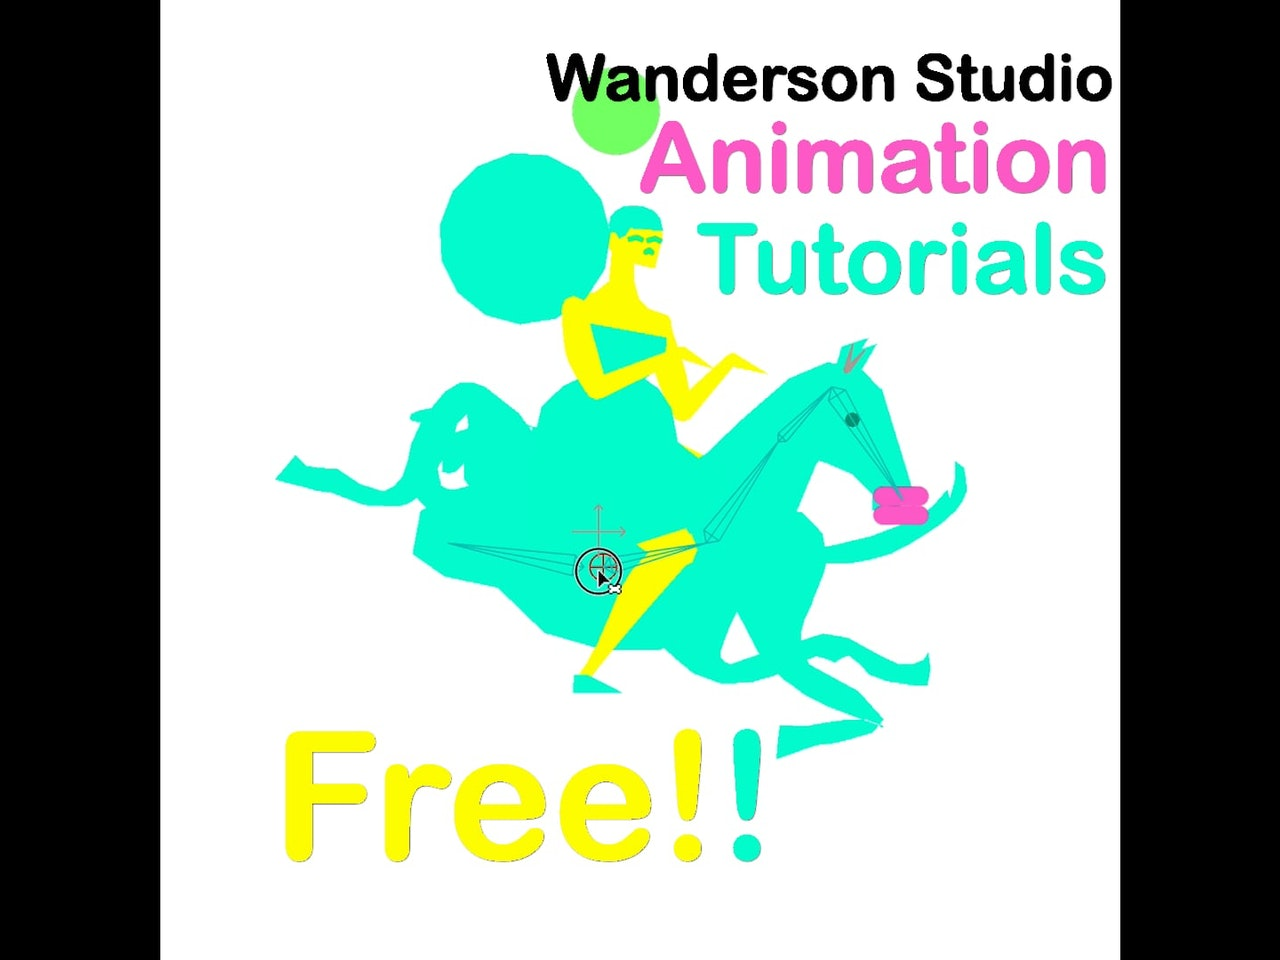 Wanderson Studio Animation Tutorials